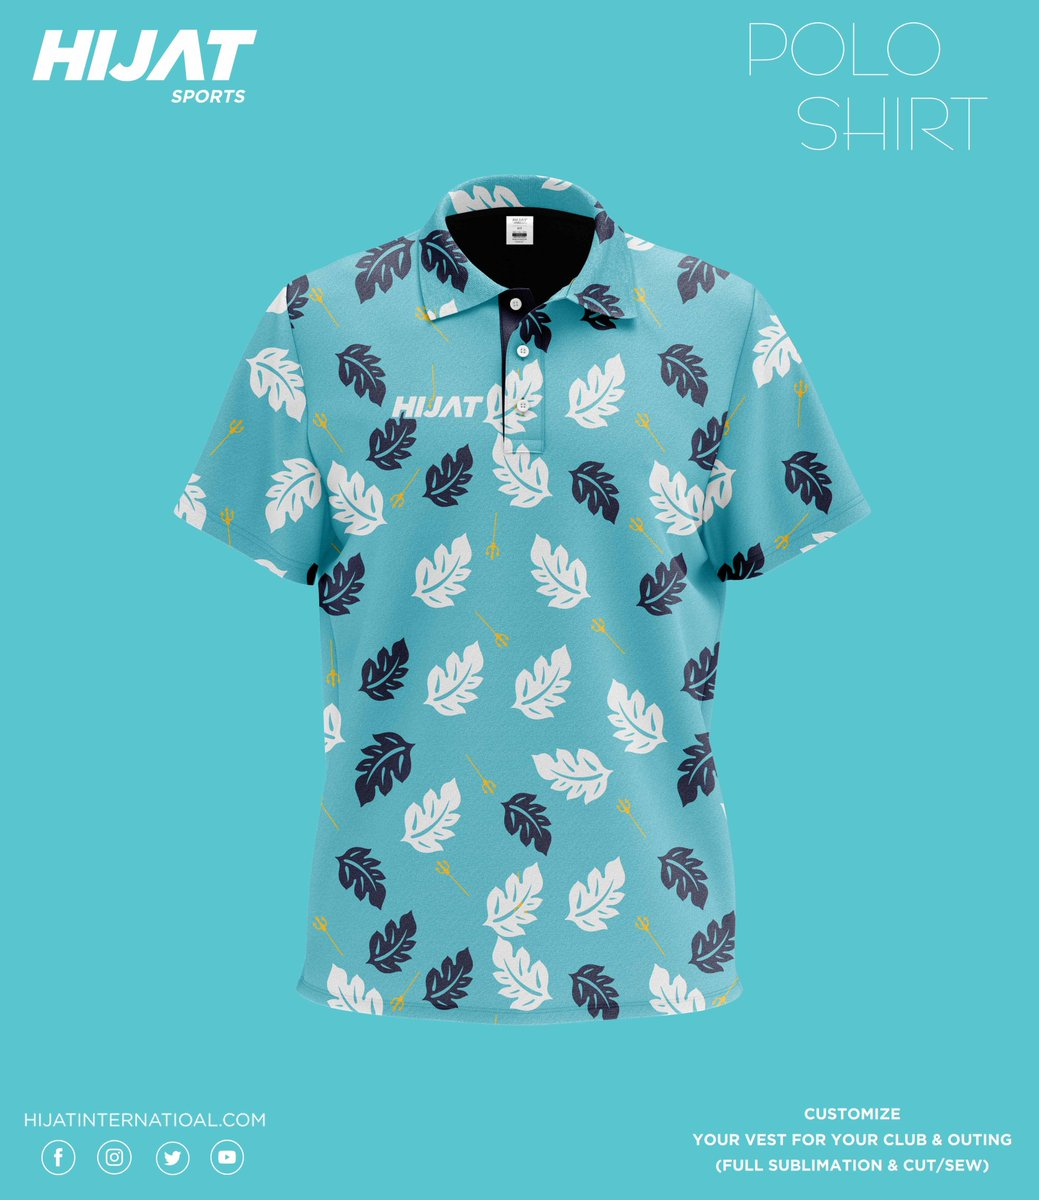 Hijat sports wears POLO SHIRT winter leaf fall. Available in all designs. DM for details. #hijatinternational  #summer #stayhome https://t.co/ozgvMayn9O